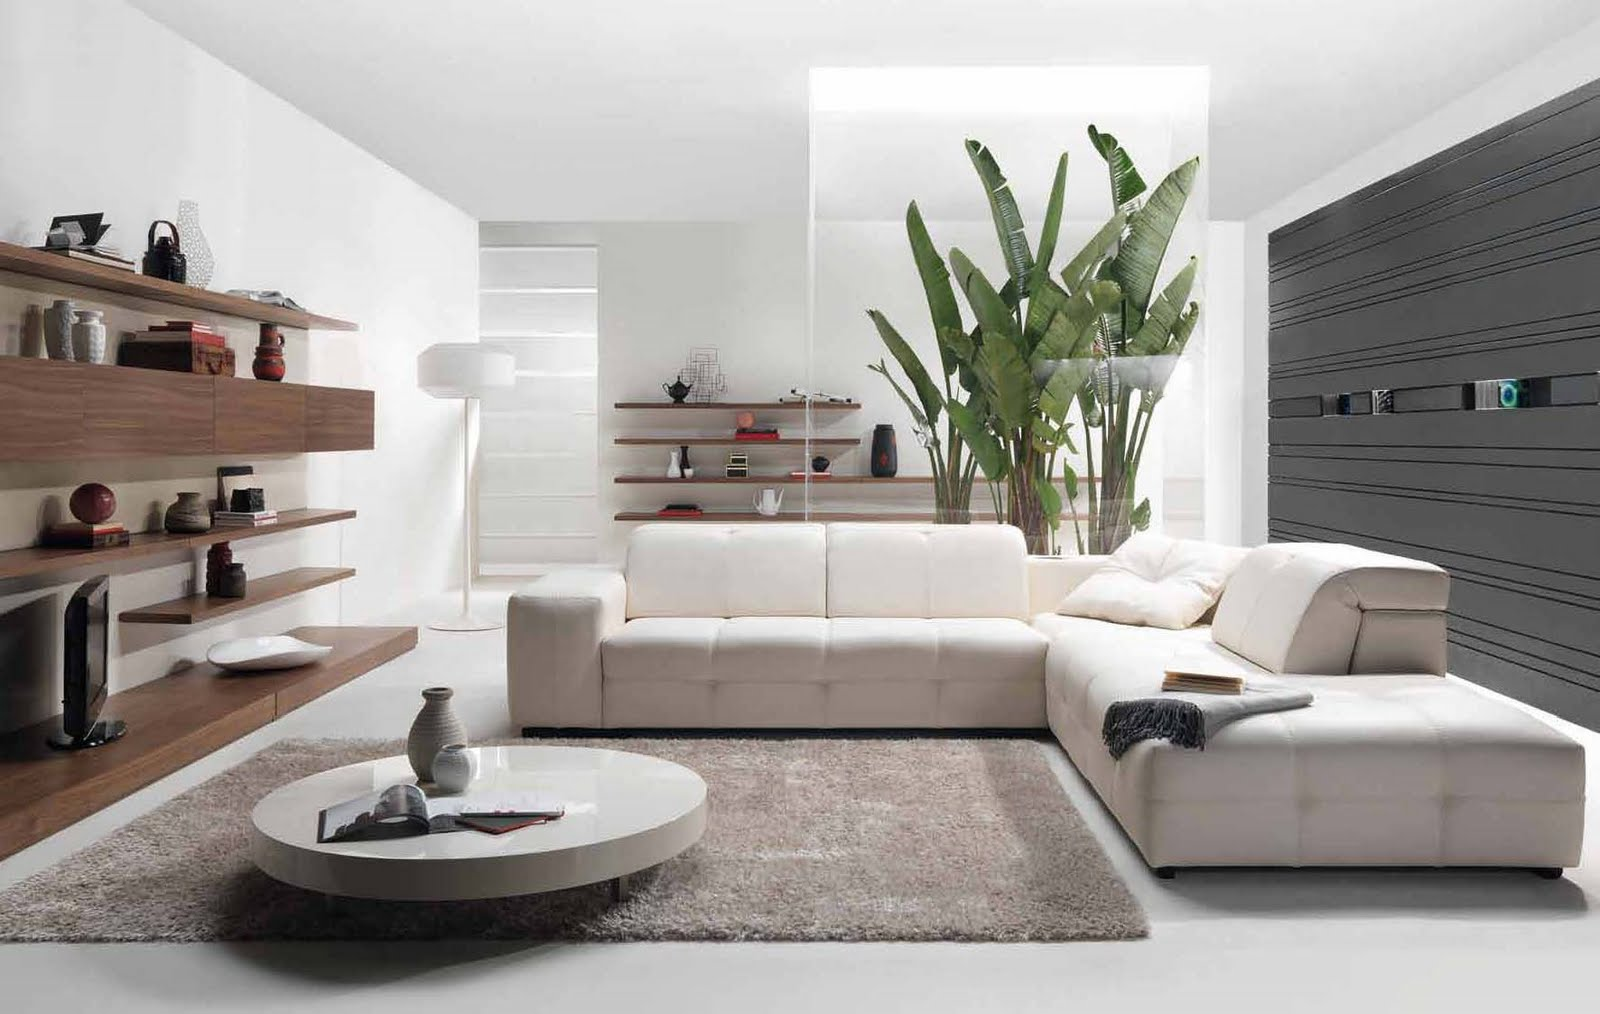 Future house design modern living room interior design for Decorating a house